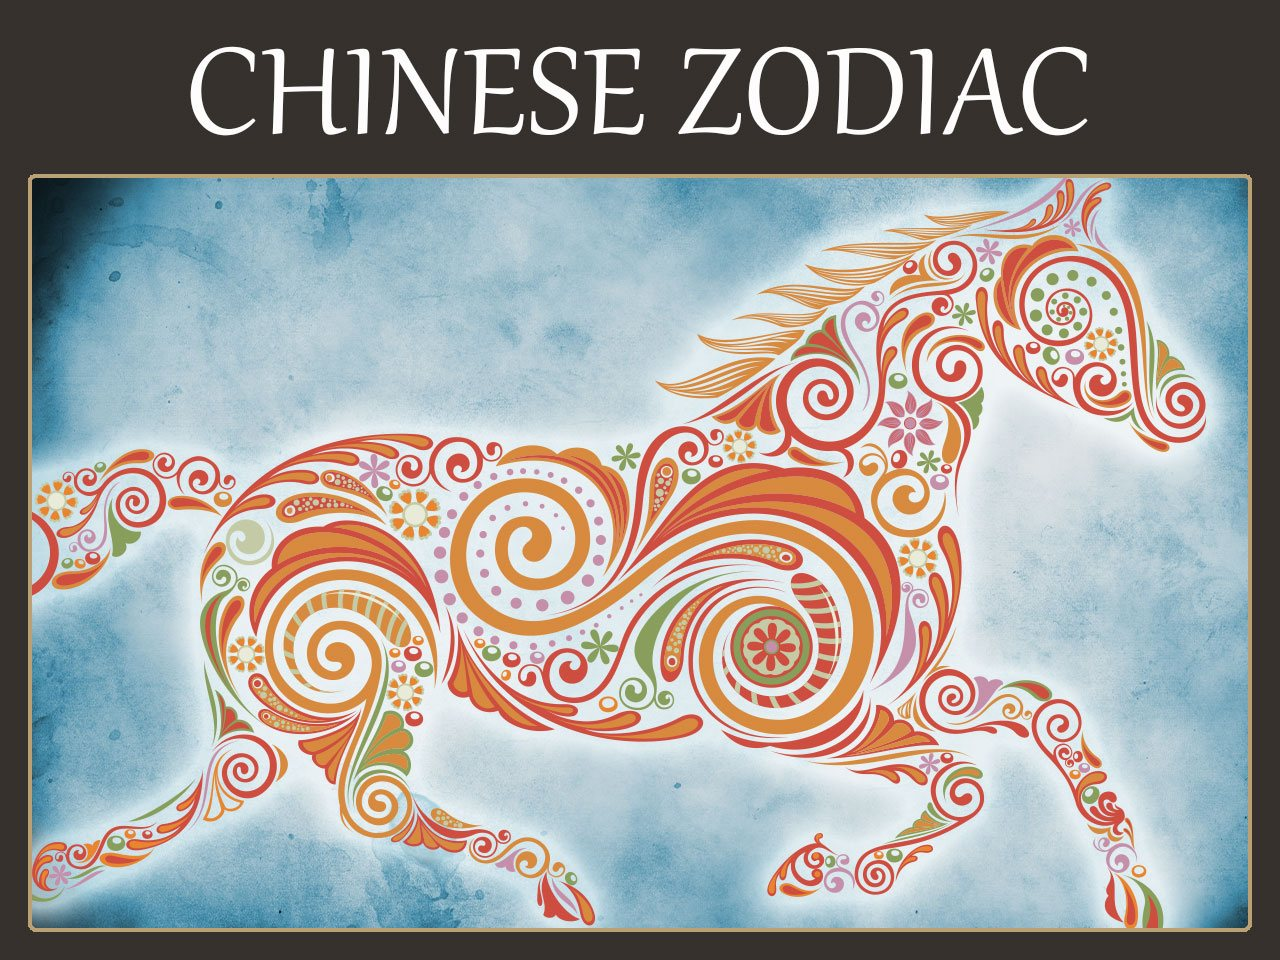 Chinese Zodiac Signs Meanings Personality Traits Characteristics